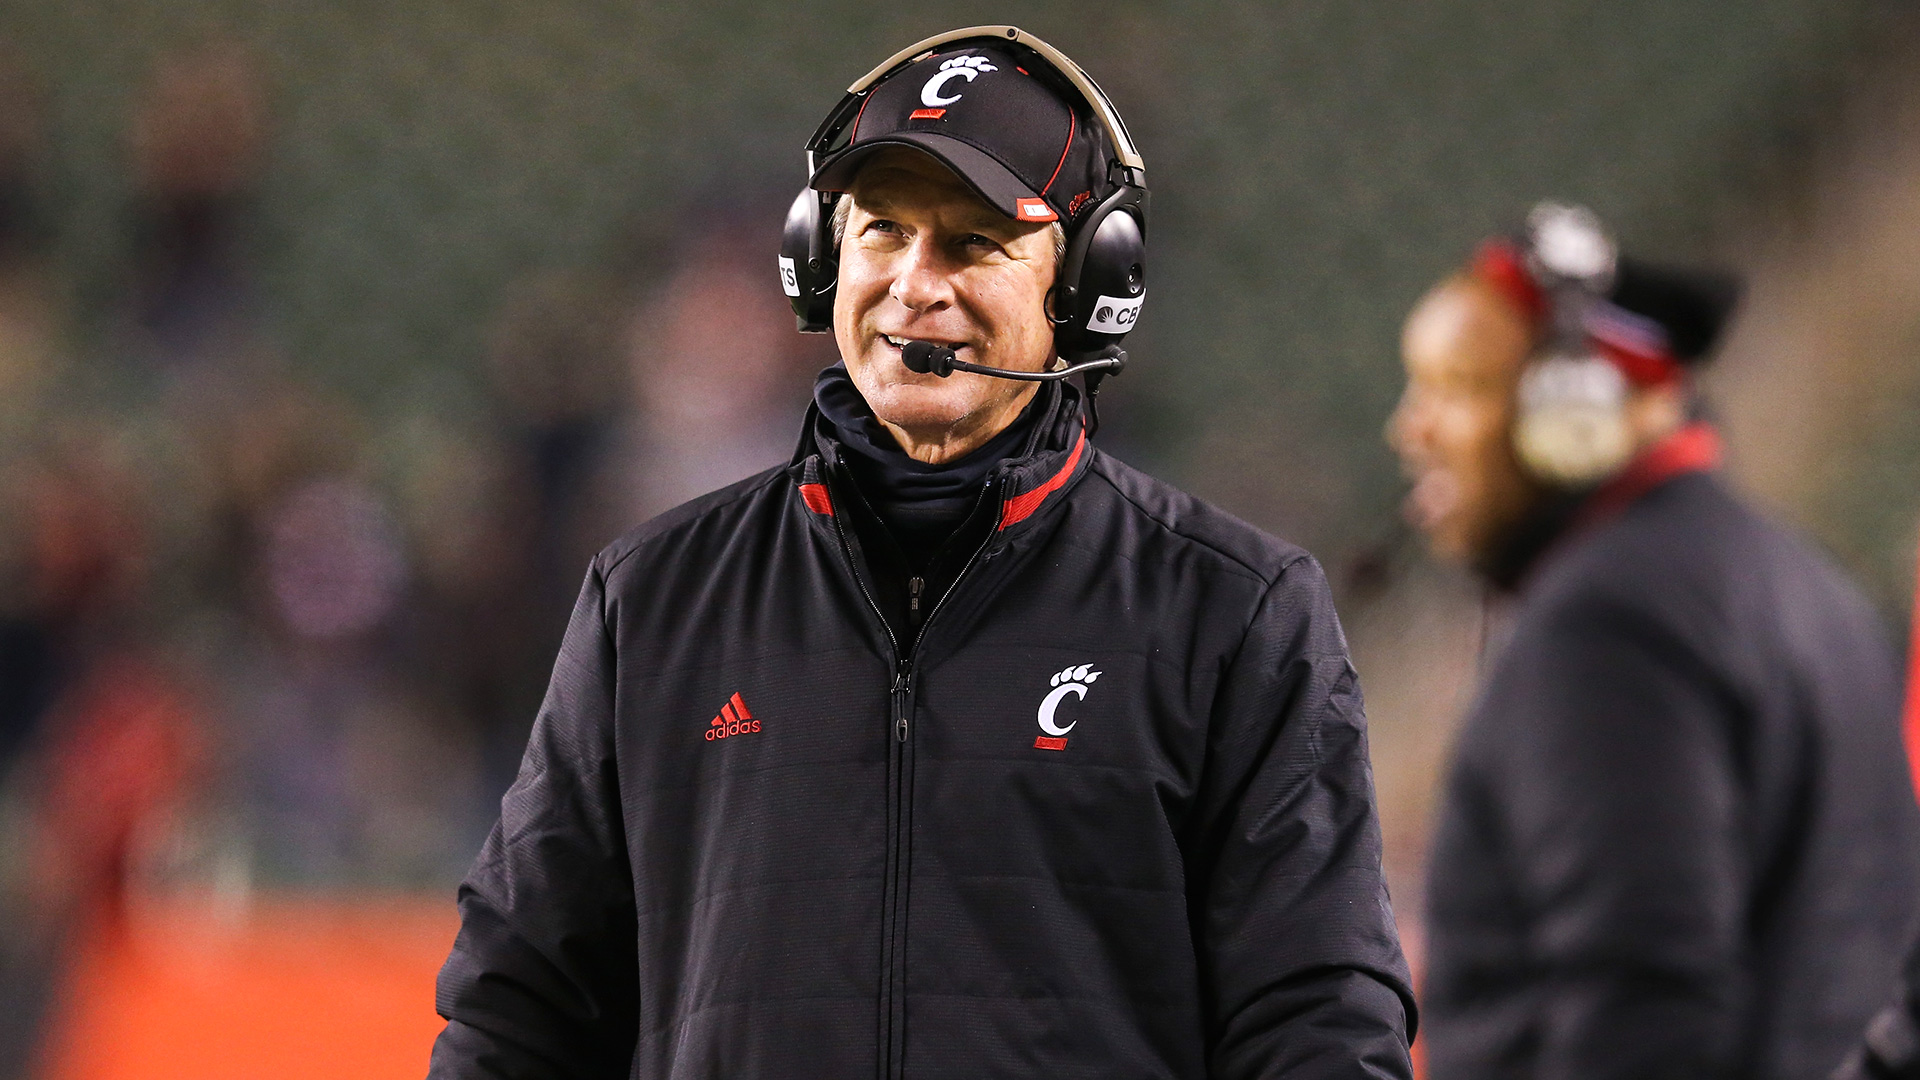 Tommy-tuberville-051115-getty-ftrjpg_l6hwyqnyby2dzkg0nywxsi8c